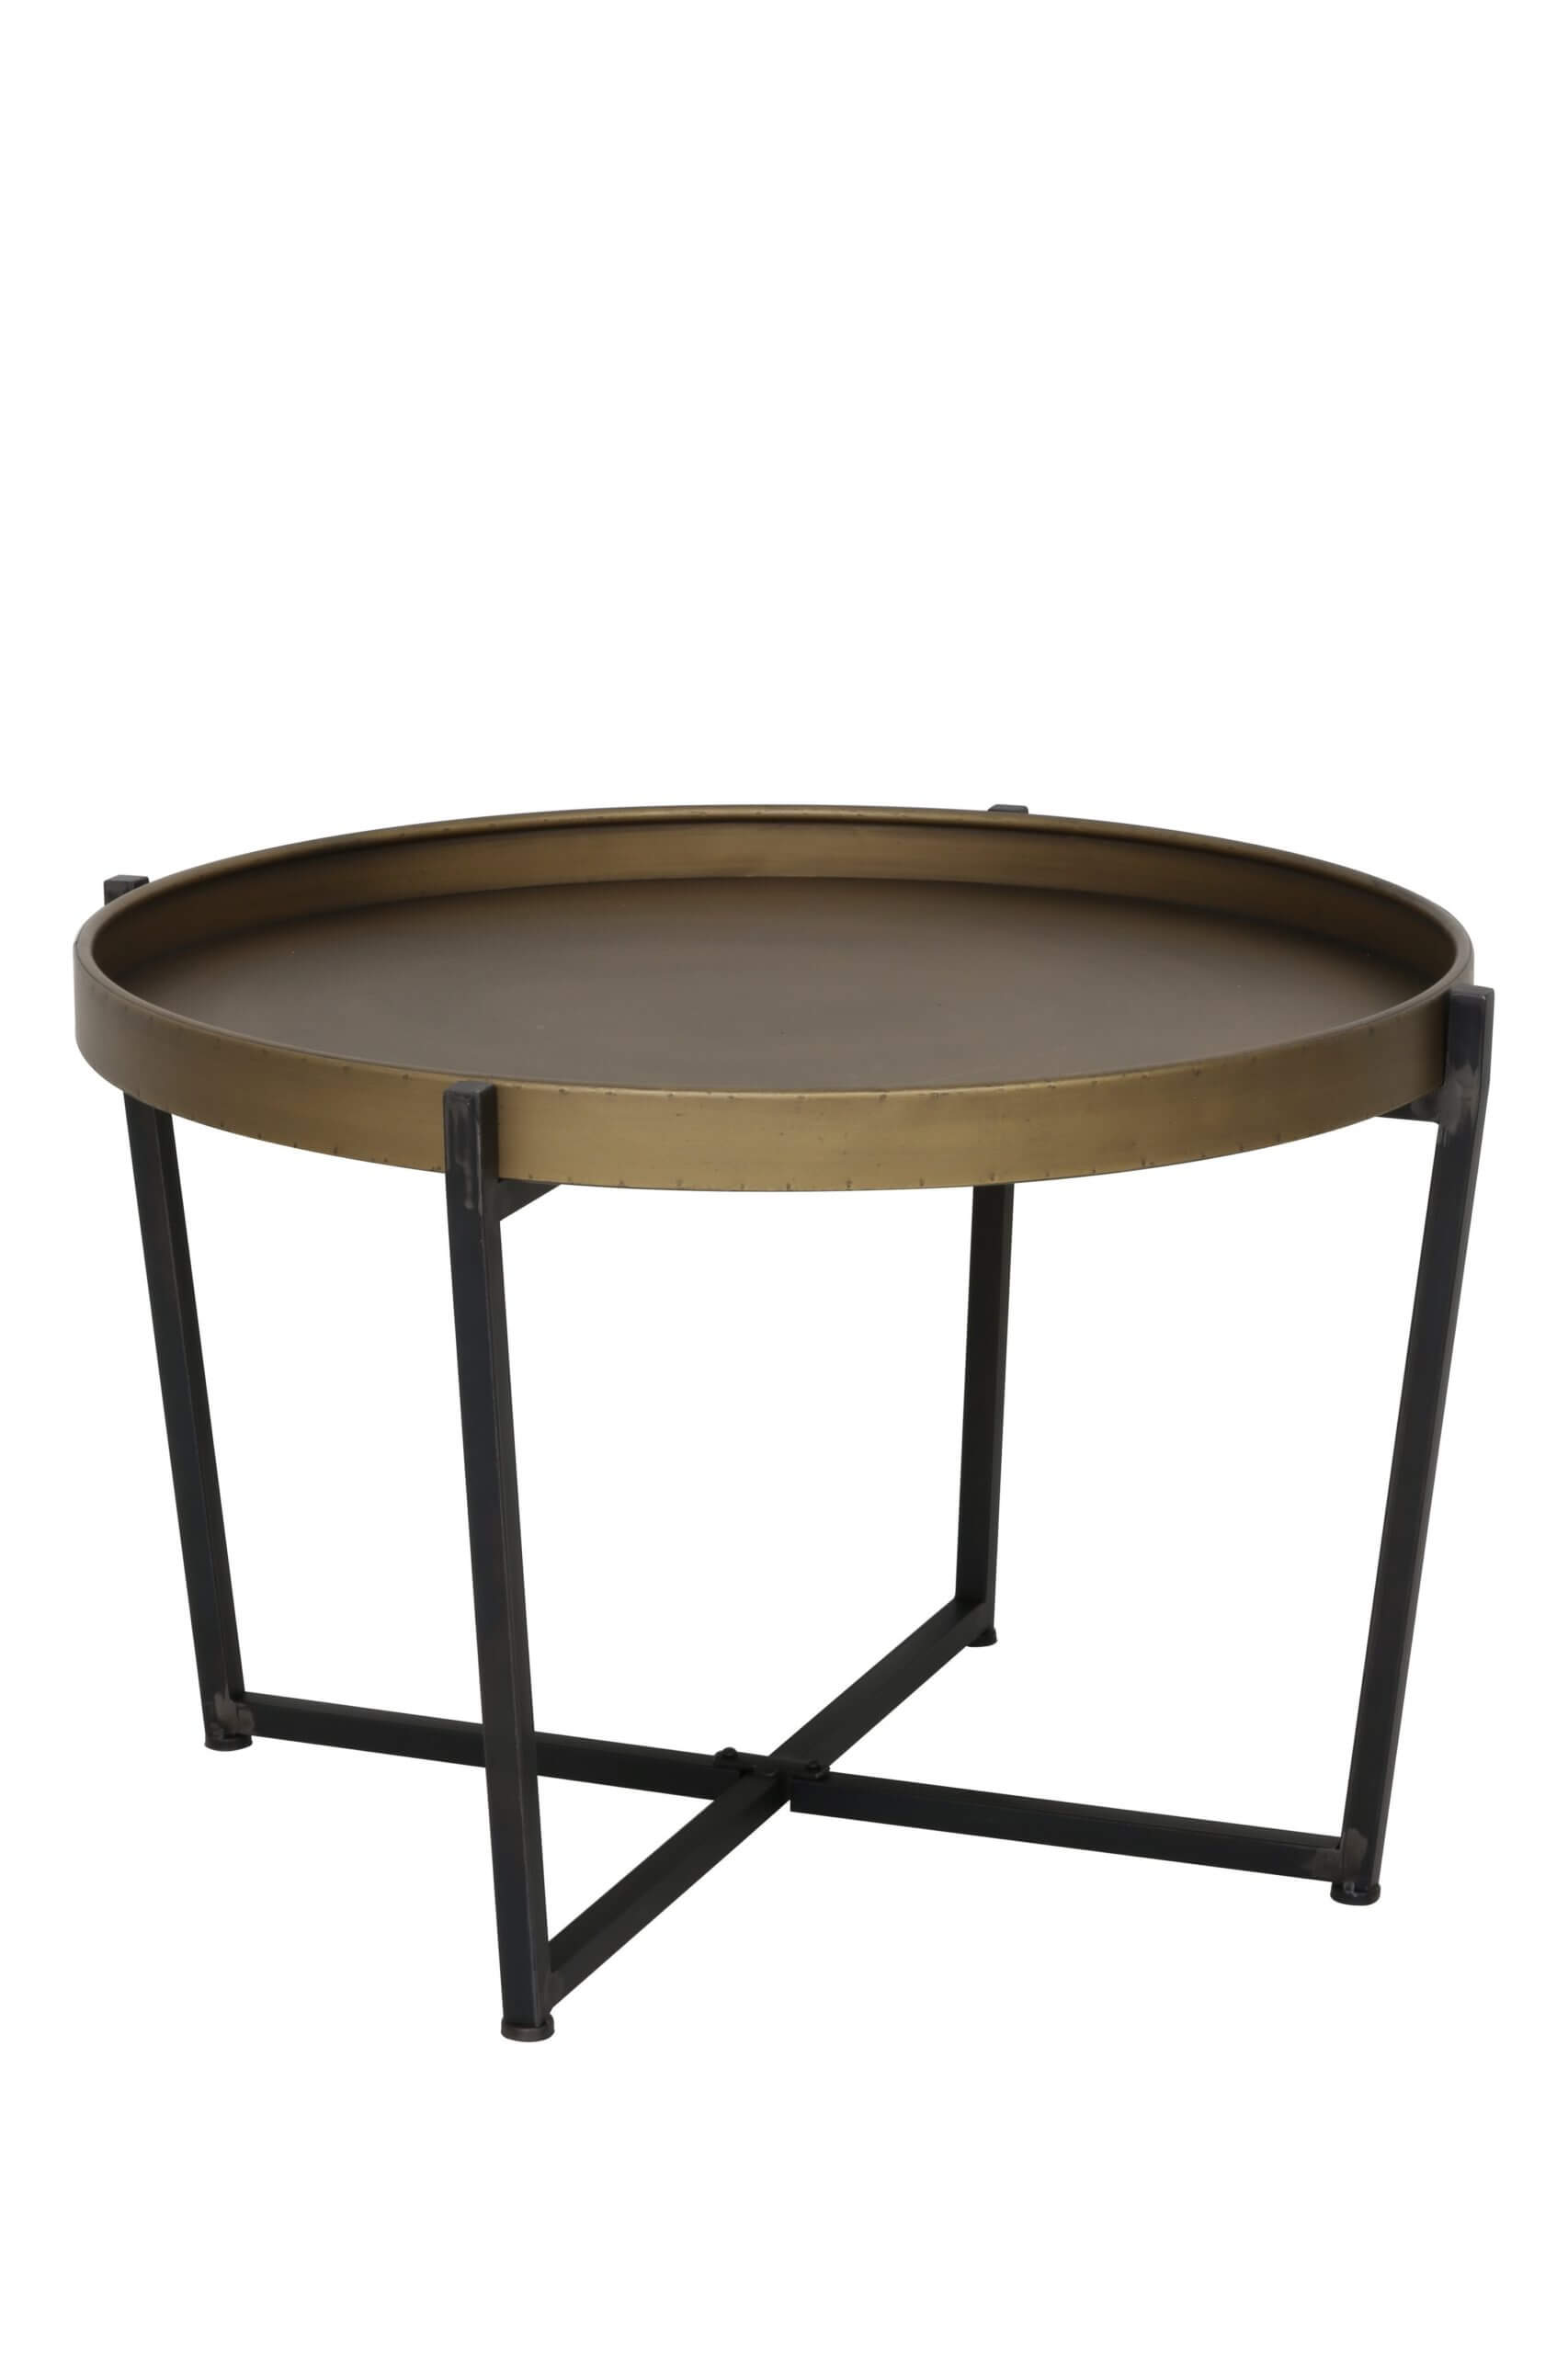 Light Living Bronze Round Coffee Table With Raised Rim